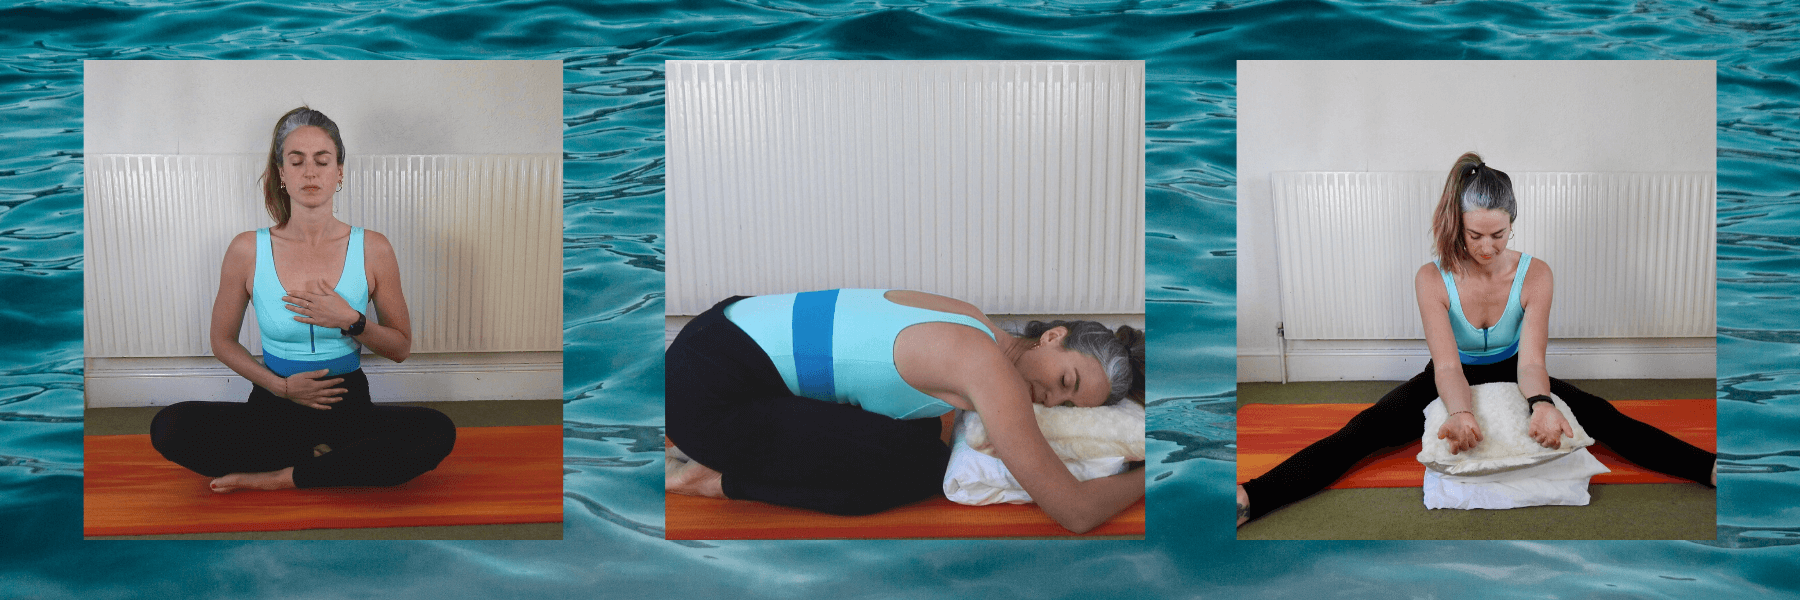 Yoga & Breathing For Anxiety